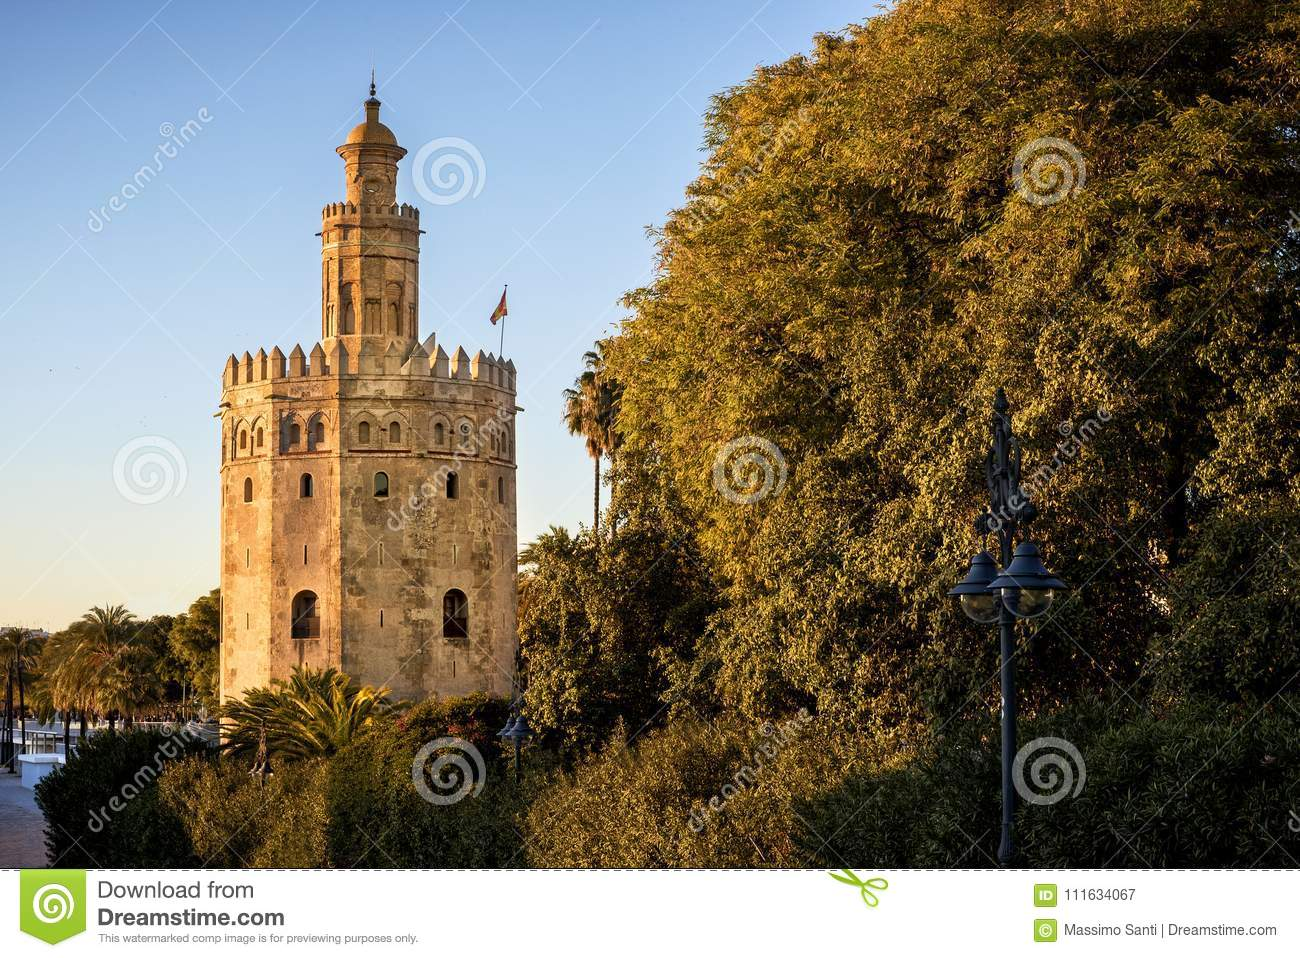 Siville - View of Golden Tower Torre del Oro of Seville, Andalusia, Spain over river Guadalquivir at sunset